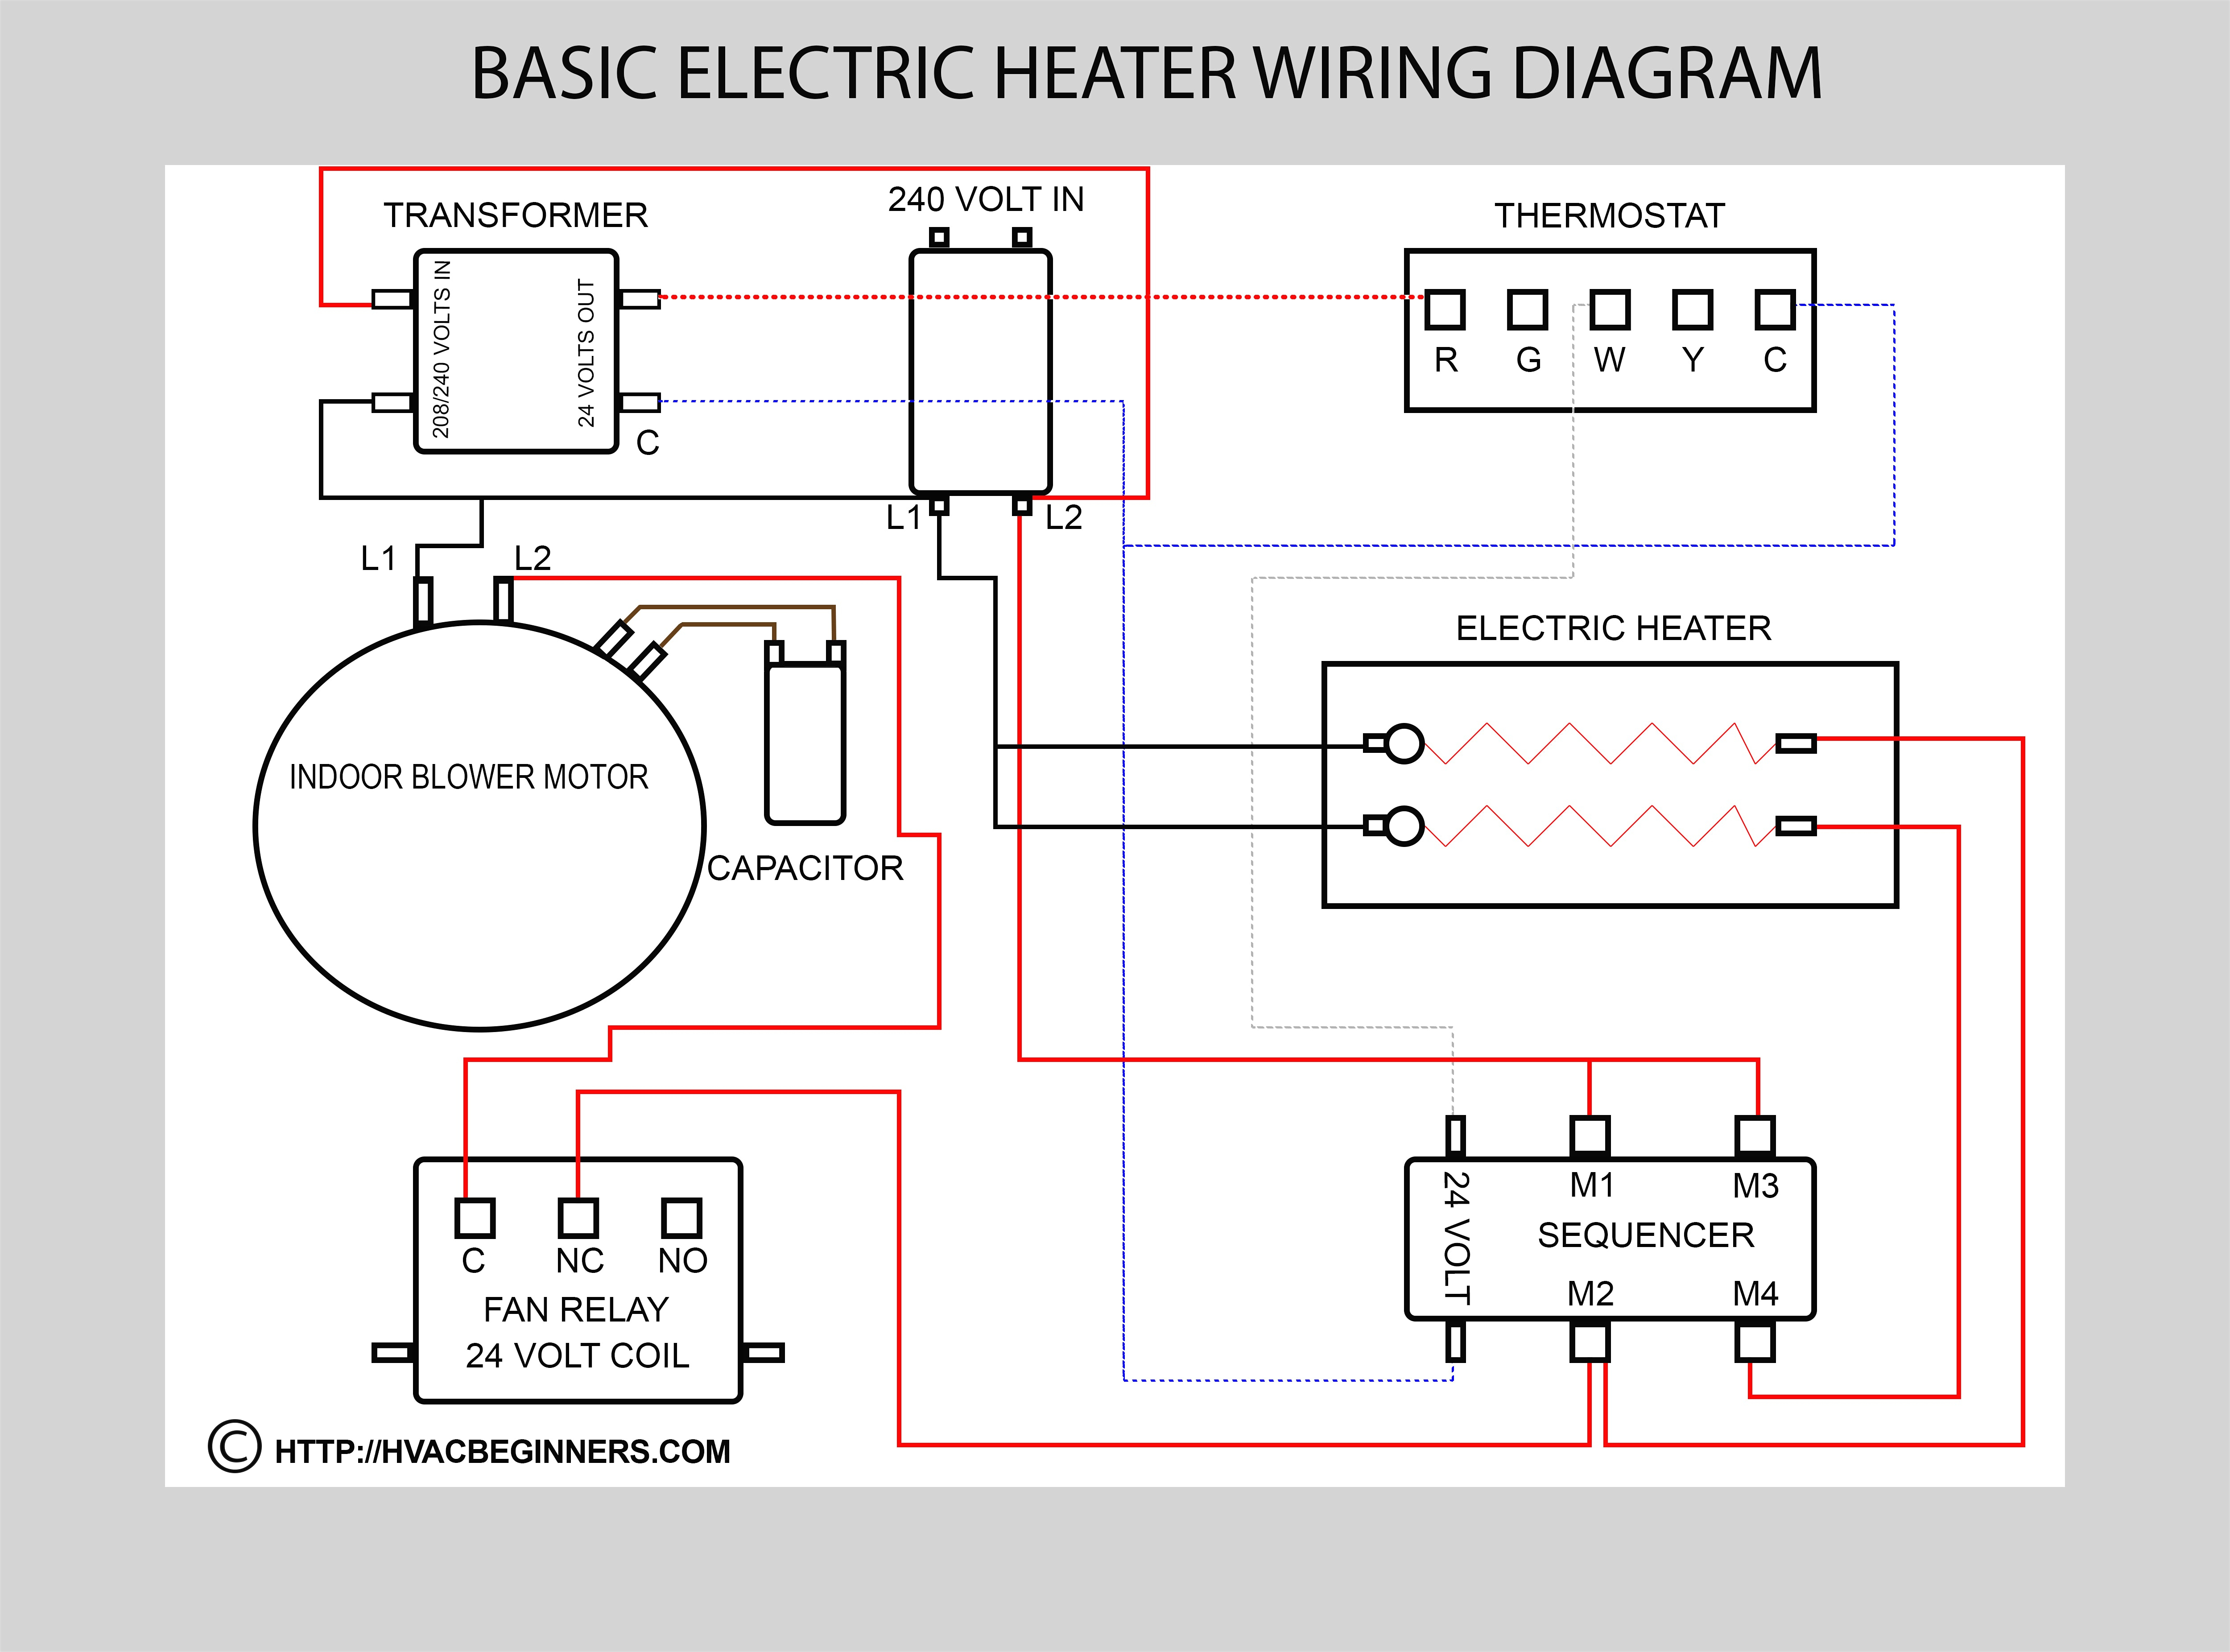 Ac Wiring Diagram - Wiring Diagrams Hubs - 220 Volt Air Compressor Wiring Diagram